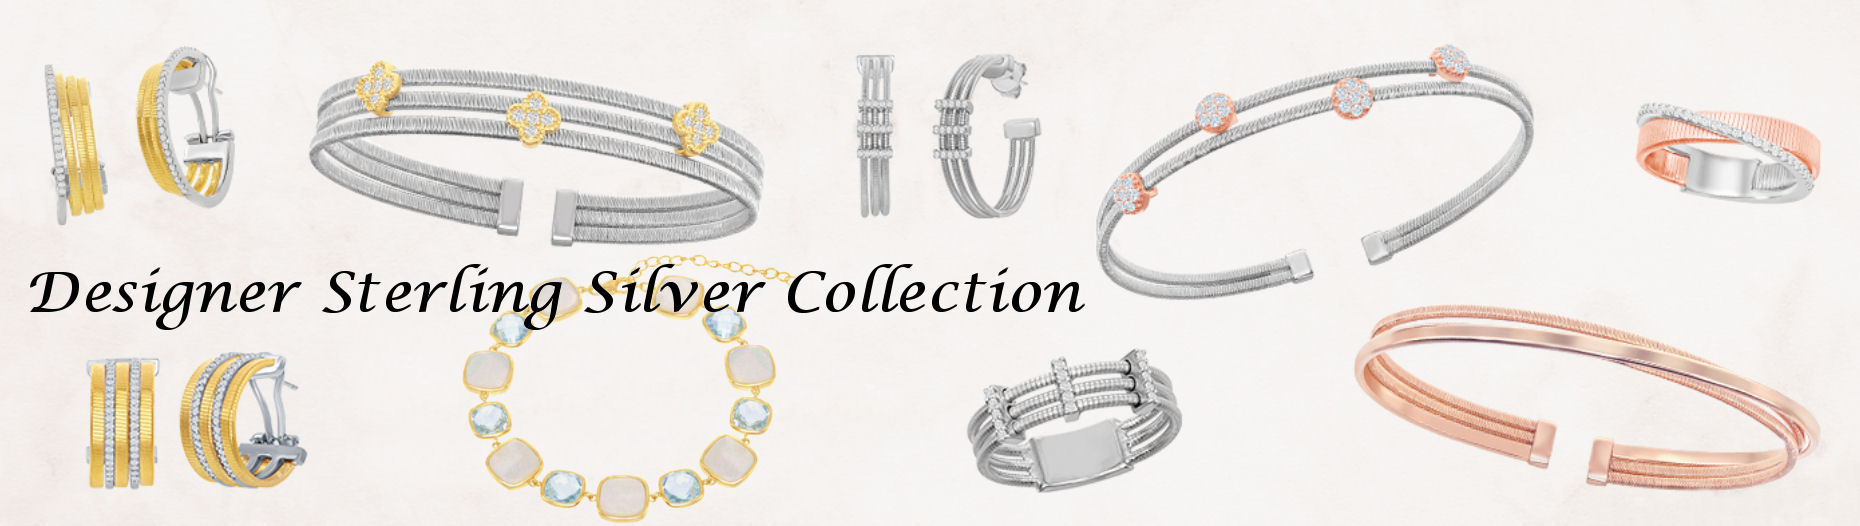 Designer Sterling Silver Collection